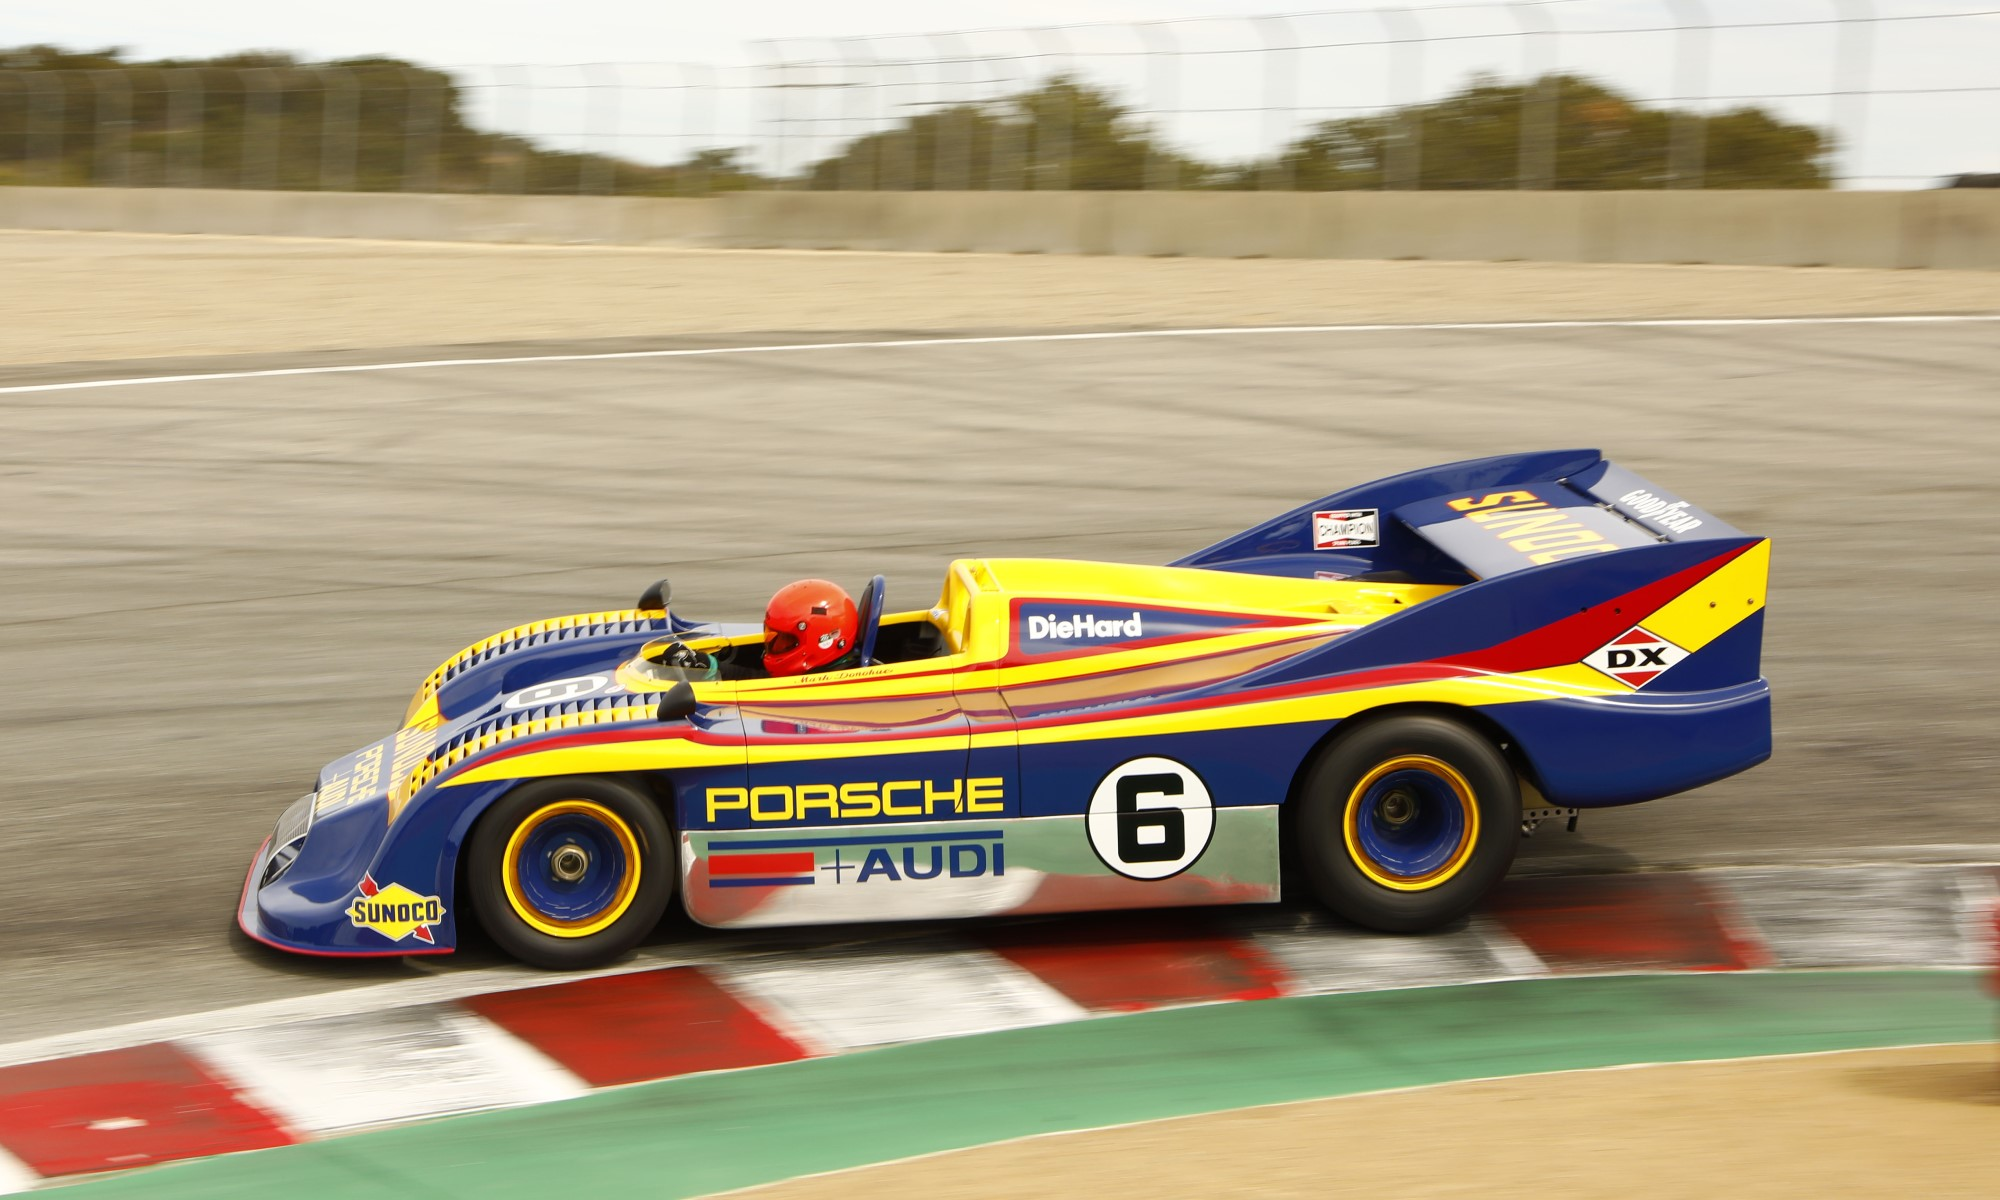 Porsche Returns to Le Mans CanAm